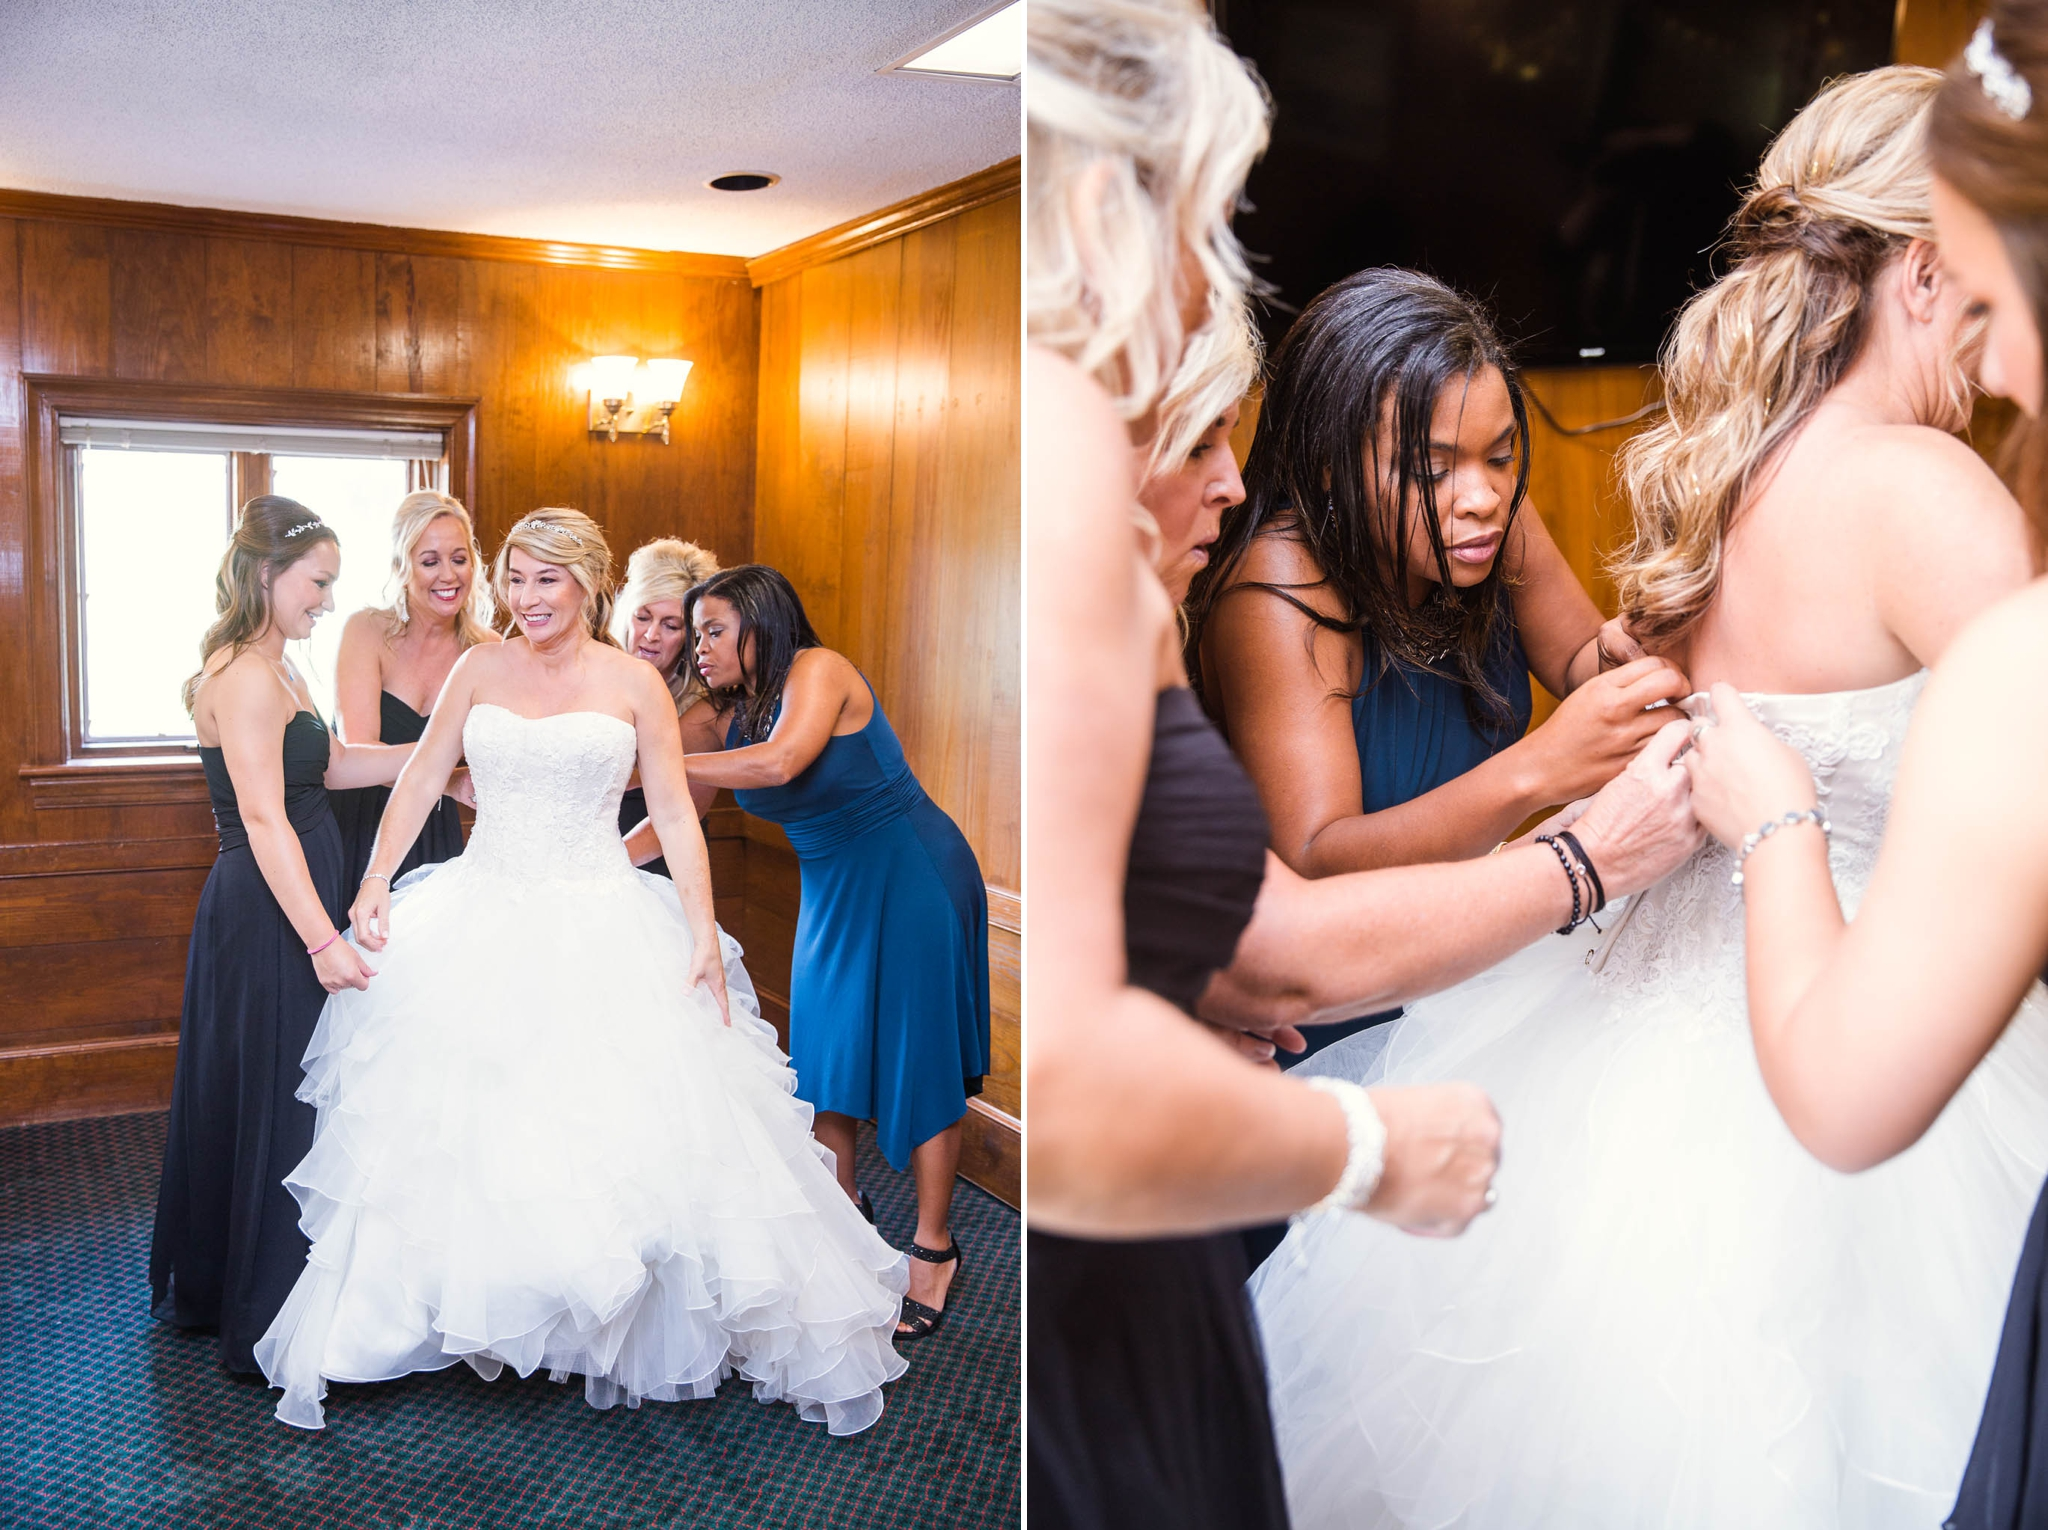 Bridesmaids helping the bride into the dress - Dona + Doug - MacGregor Downs Country Club in Cary, NC - Raleigh Wedding Photographer